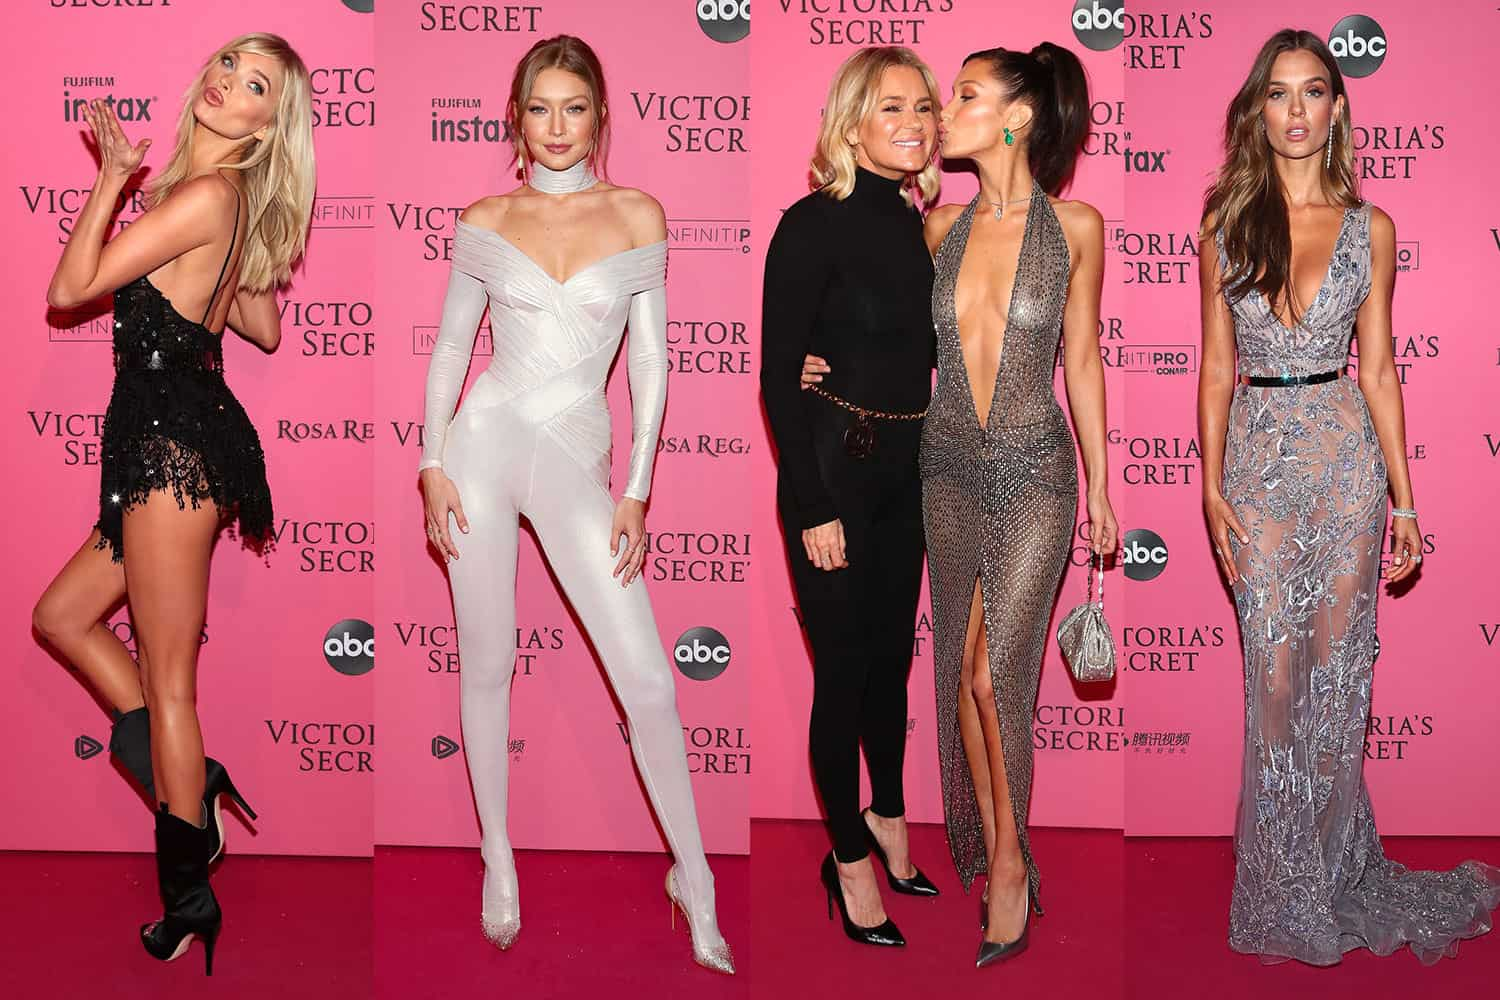 d3a282bc327 32 Hottest Red Carpet Looks From the Victoria s Secret After Party